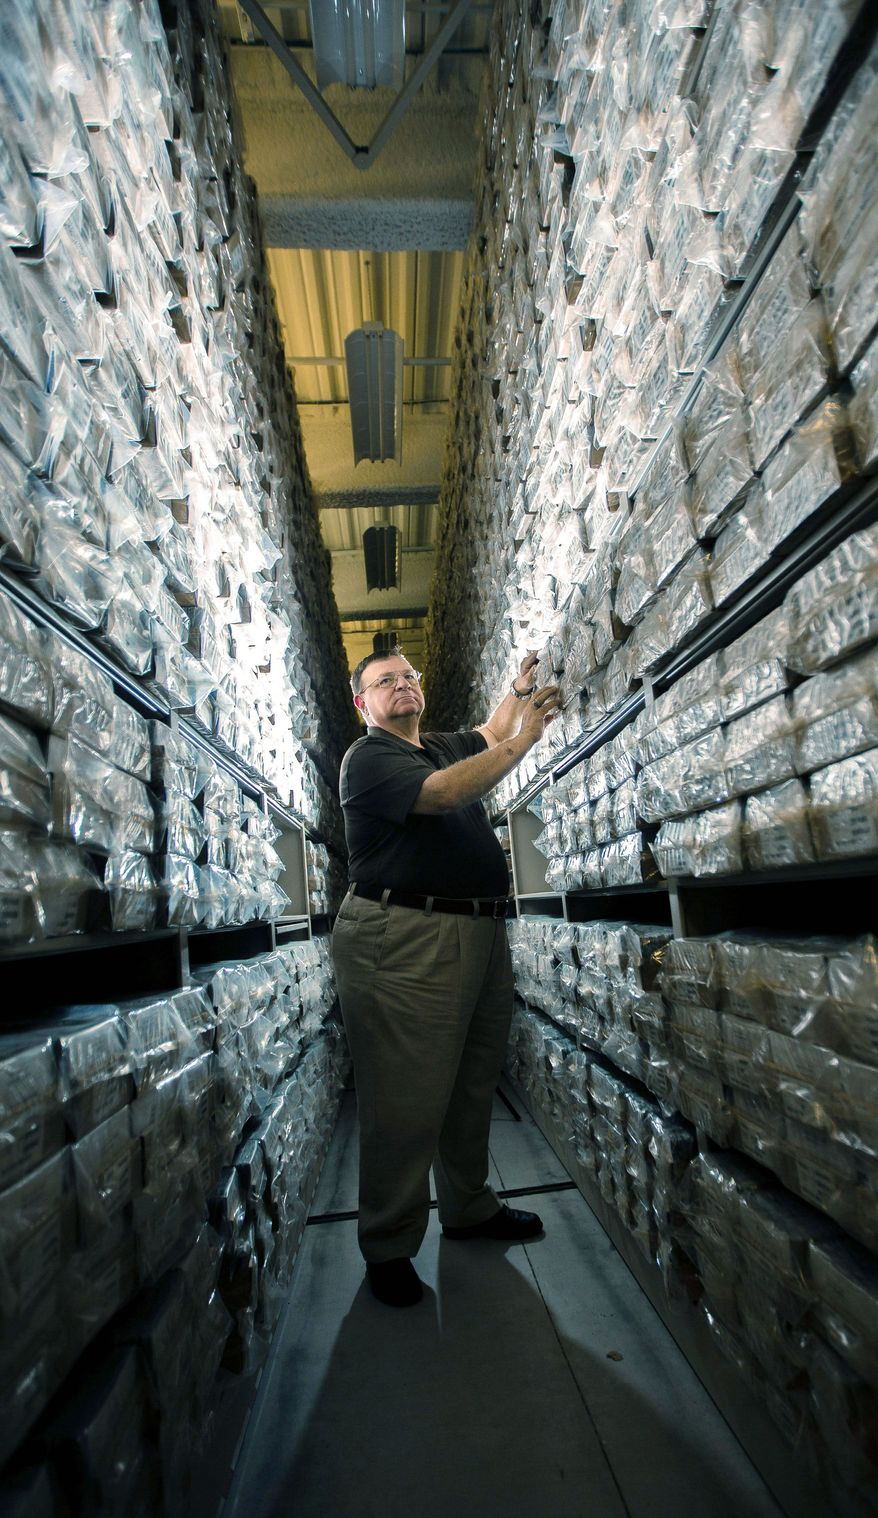 James Canik, deputy director of the Armed Forces DNA Identification Laboratory, searches among the vacuum-sealed DNA samples stored at the Armed Forces Repository of Specimen Samples at Dover Air Force Base. (Andrew S. Geraci/The Washington Times)